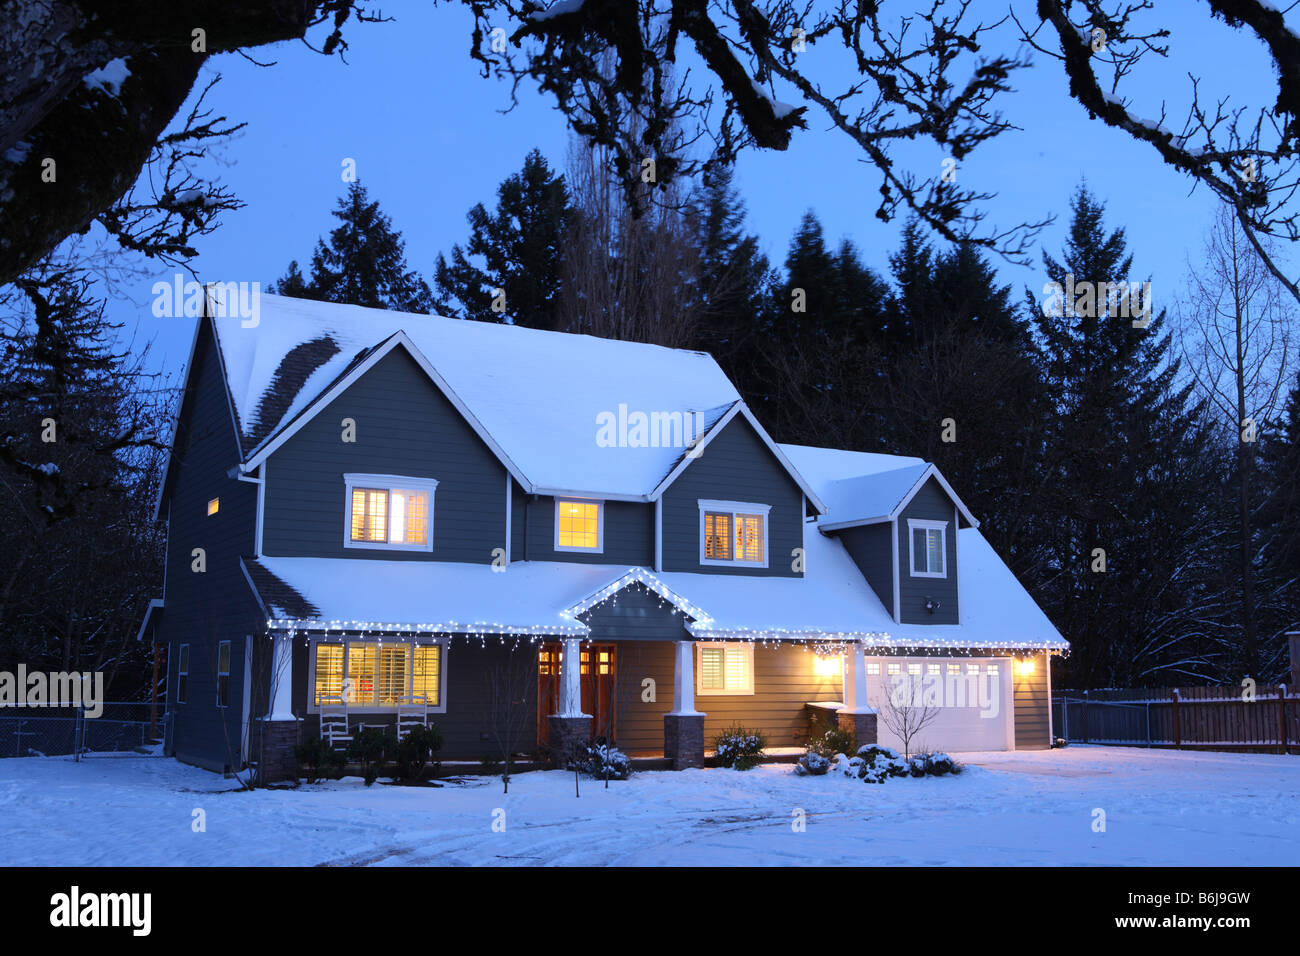 winter home house at night with lights on and snow stock. Black Bedroom Furniture Sets. Home Design Ideas